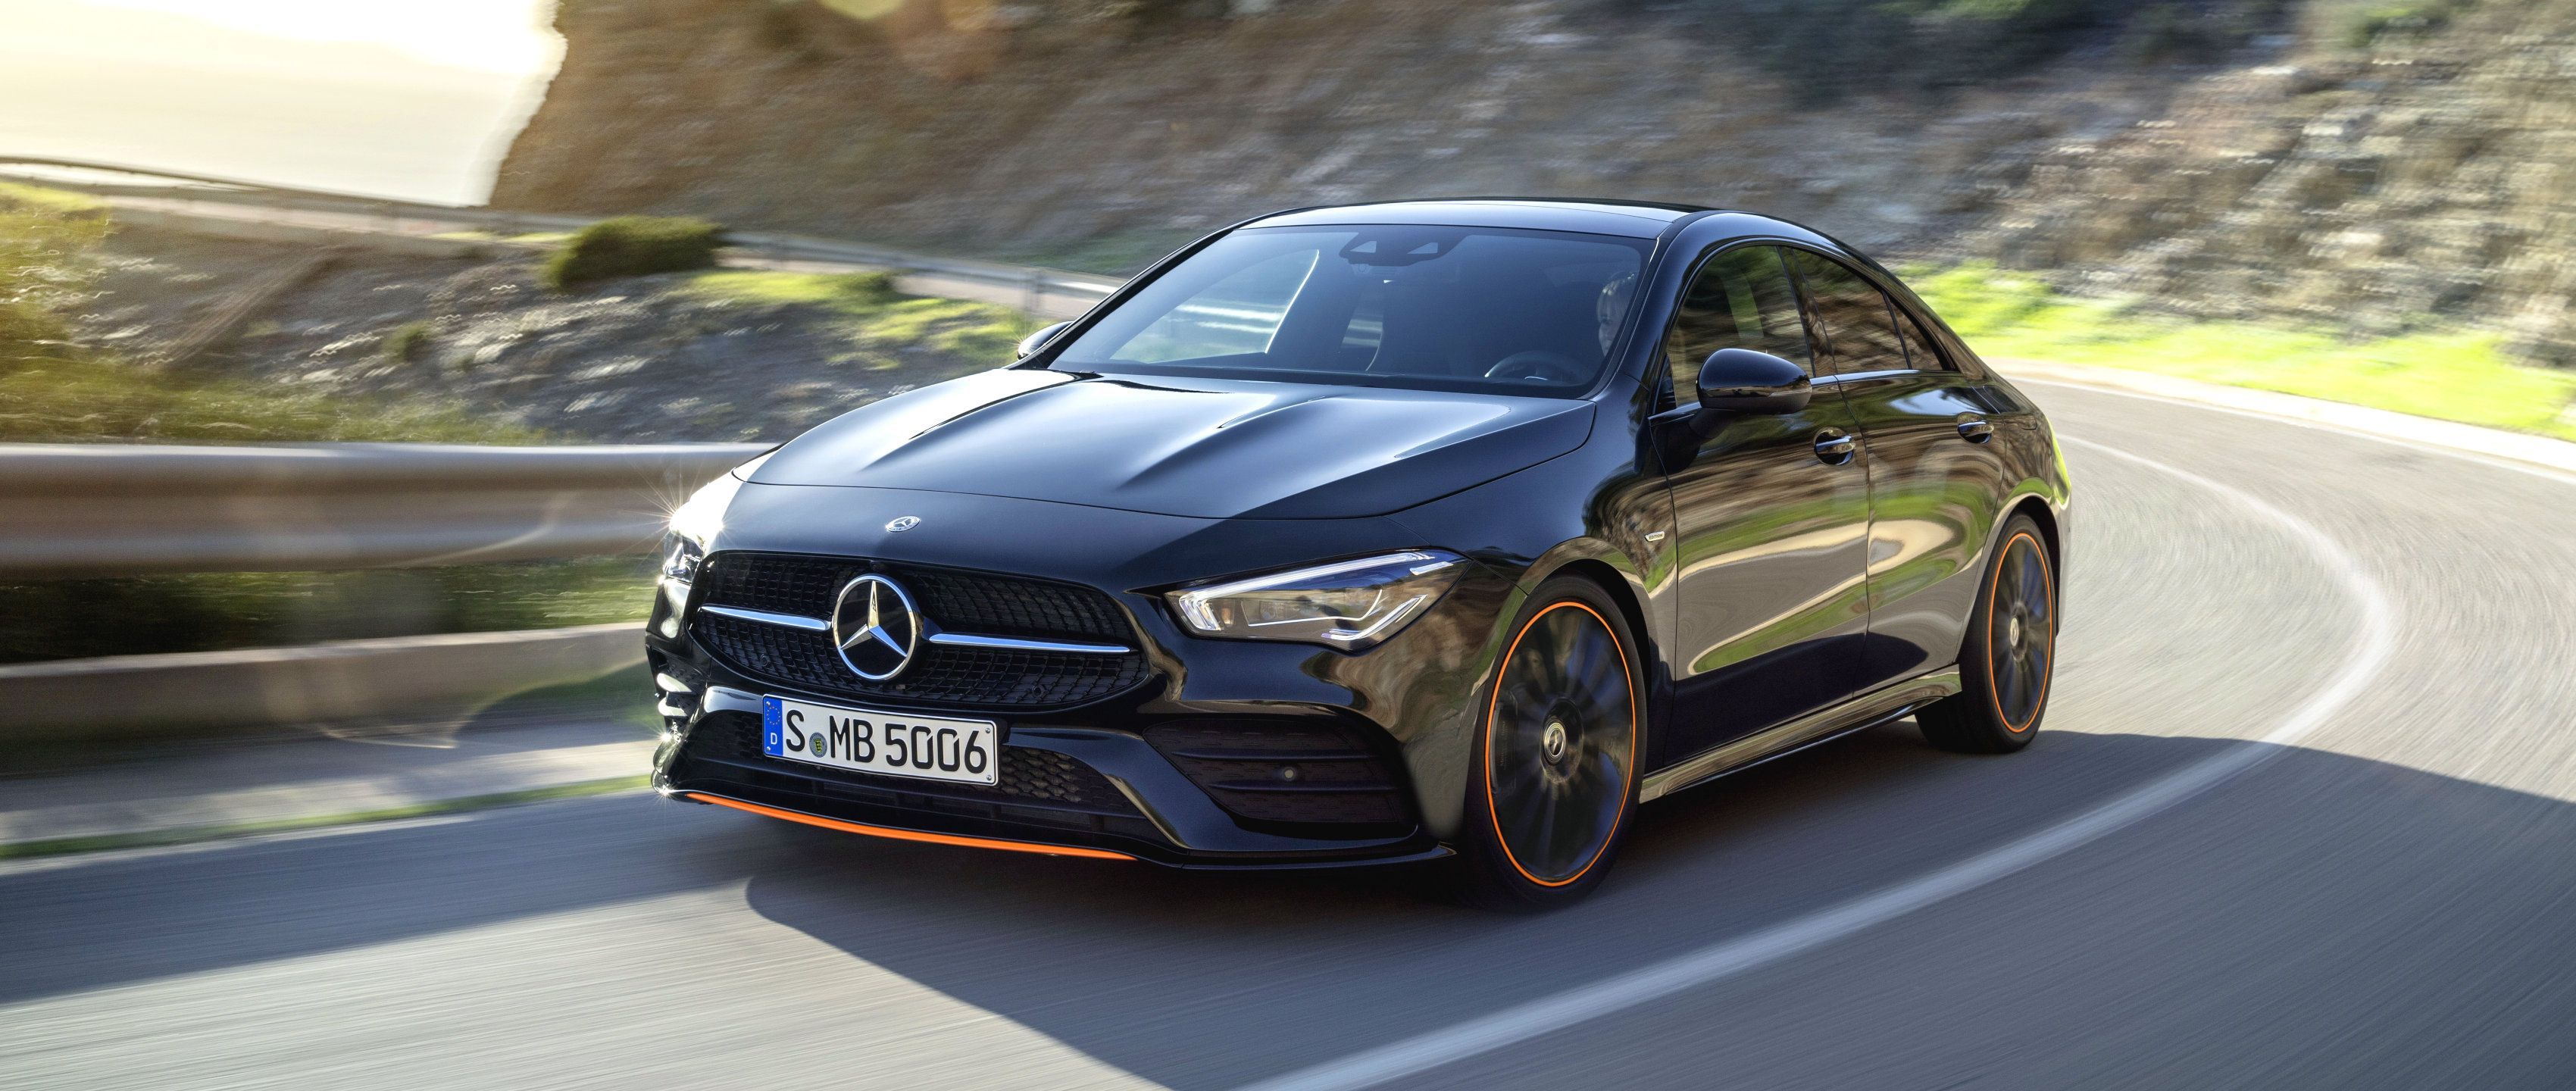 New Mercedes Cla 2019 Review Mercedes Benz Models Mercedes Benz